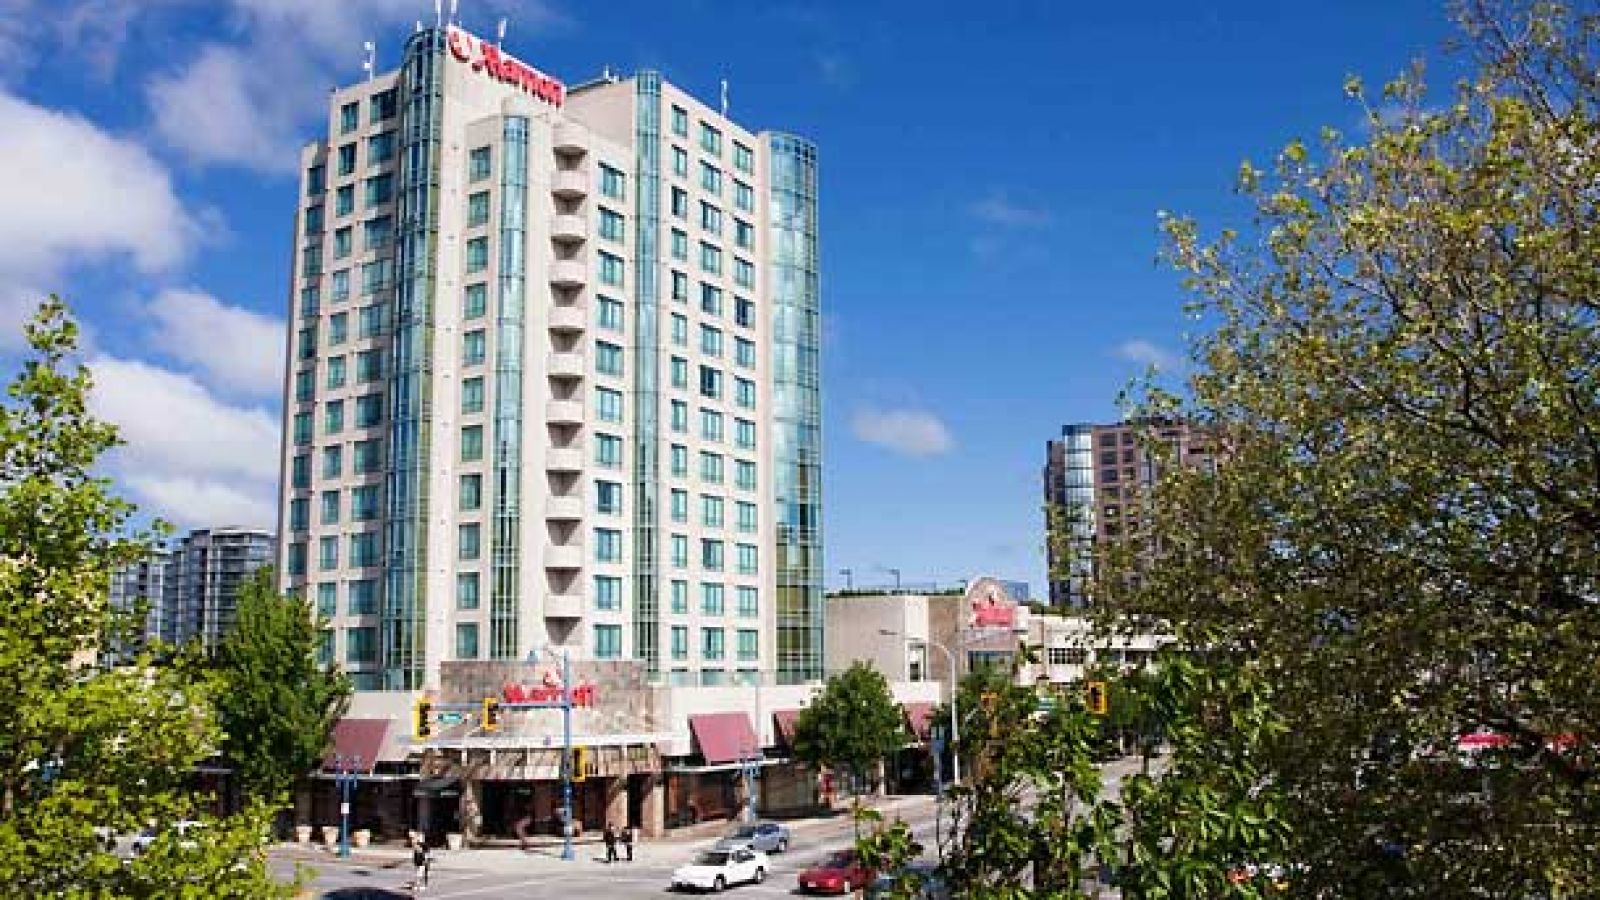 Vancouver Airport Marriott Hotel - Exterior View